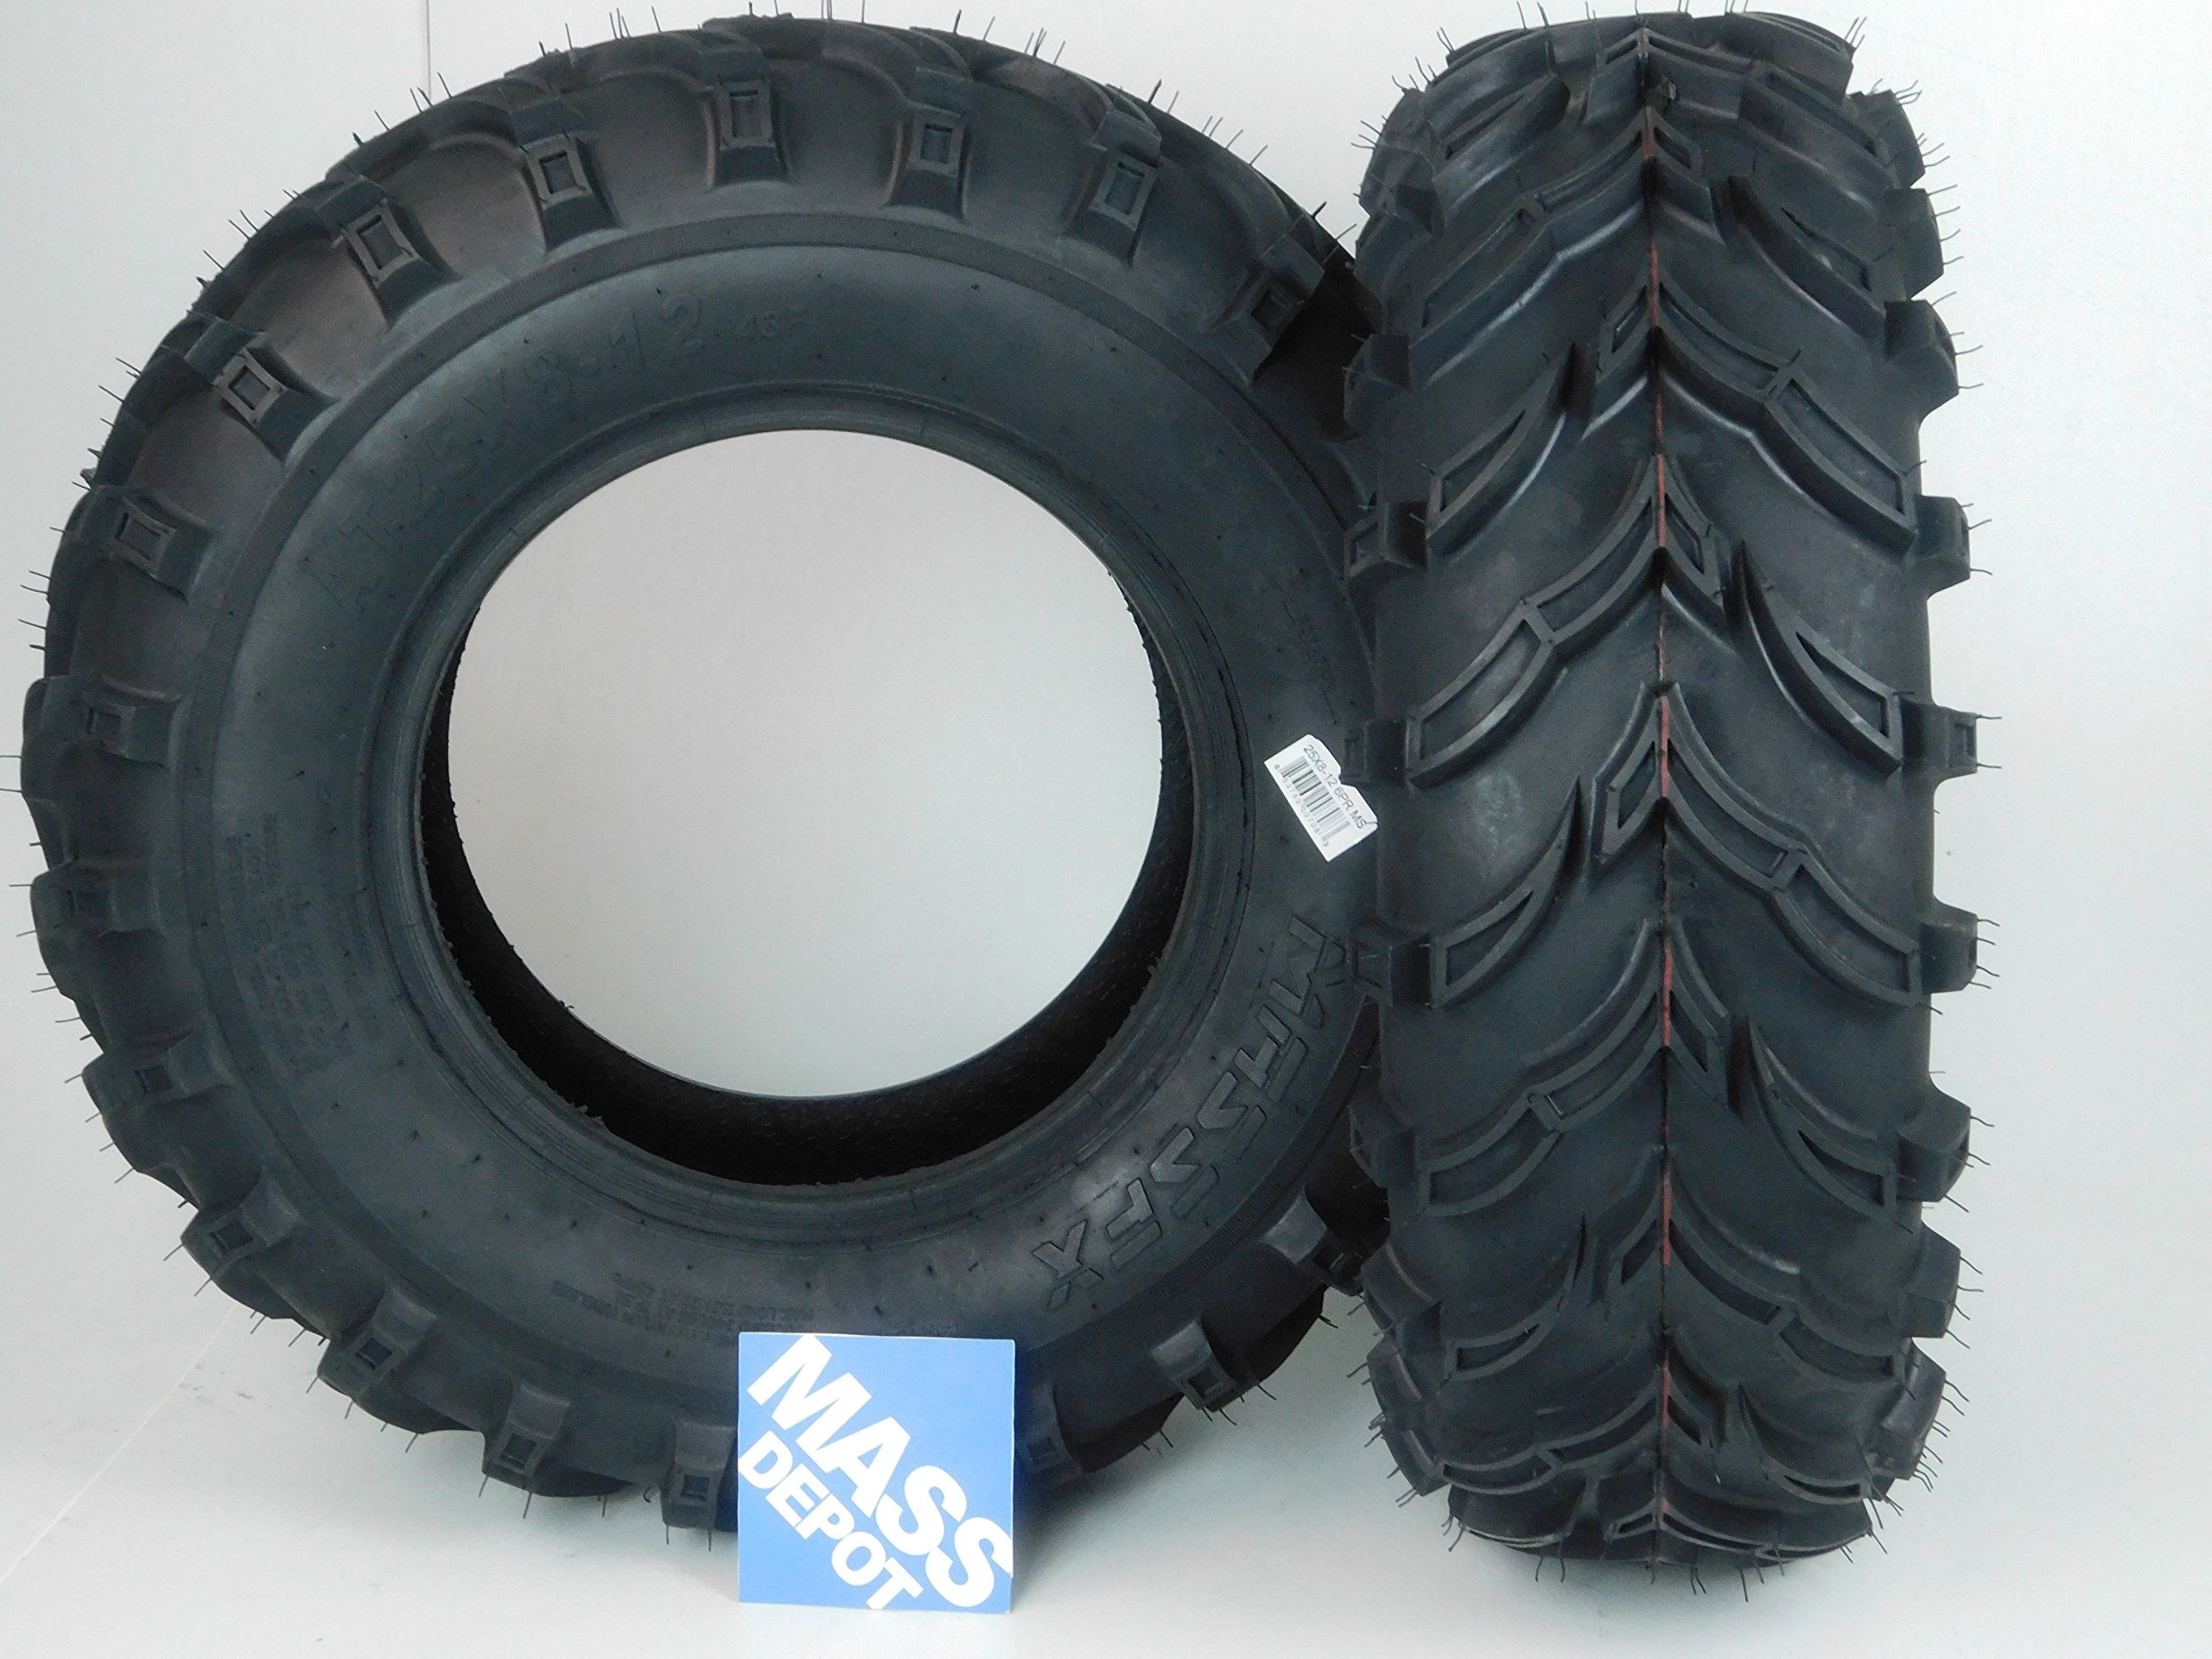 New MASSFX MS ATV/UTV Tires 25x8-12 Front, Set of 2 25x8x12 25x8/12